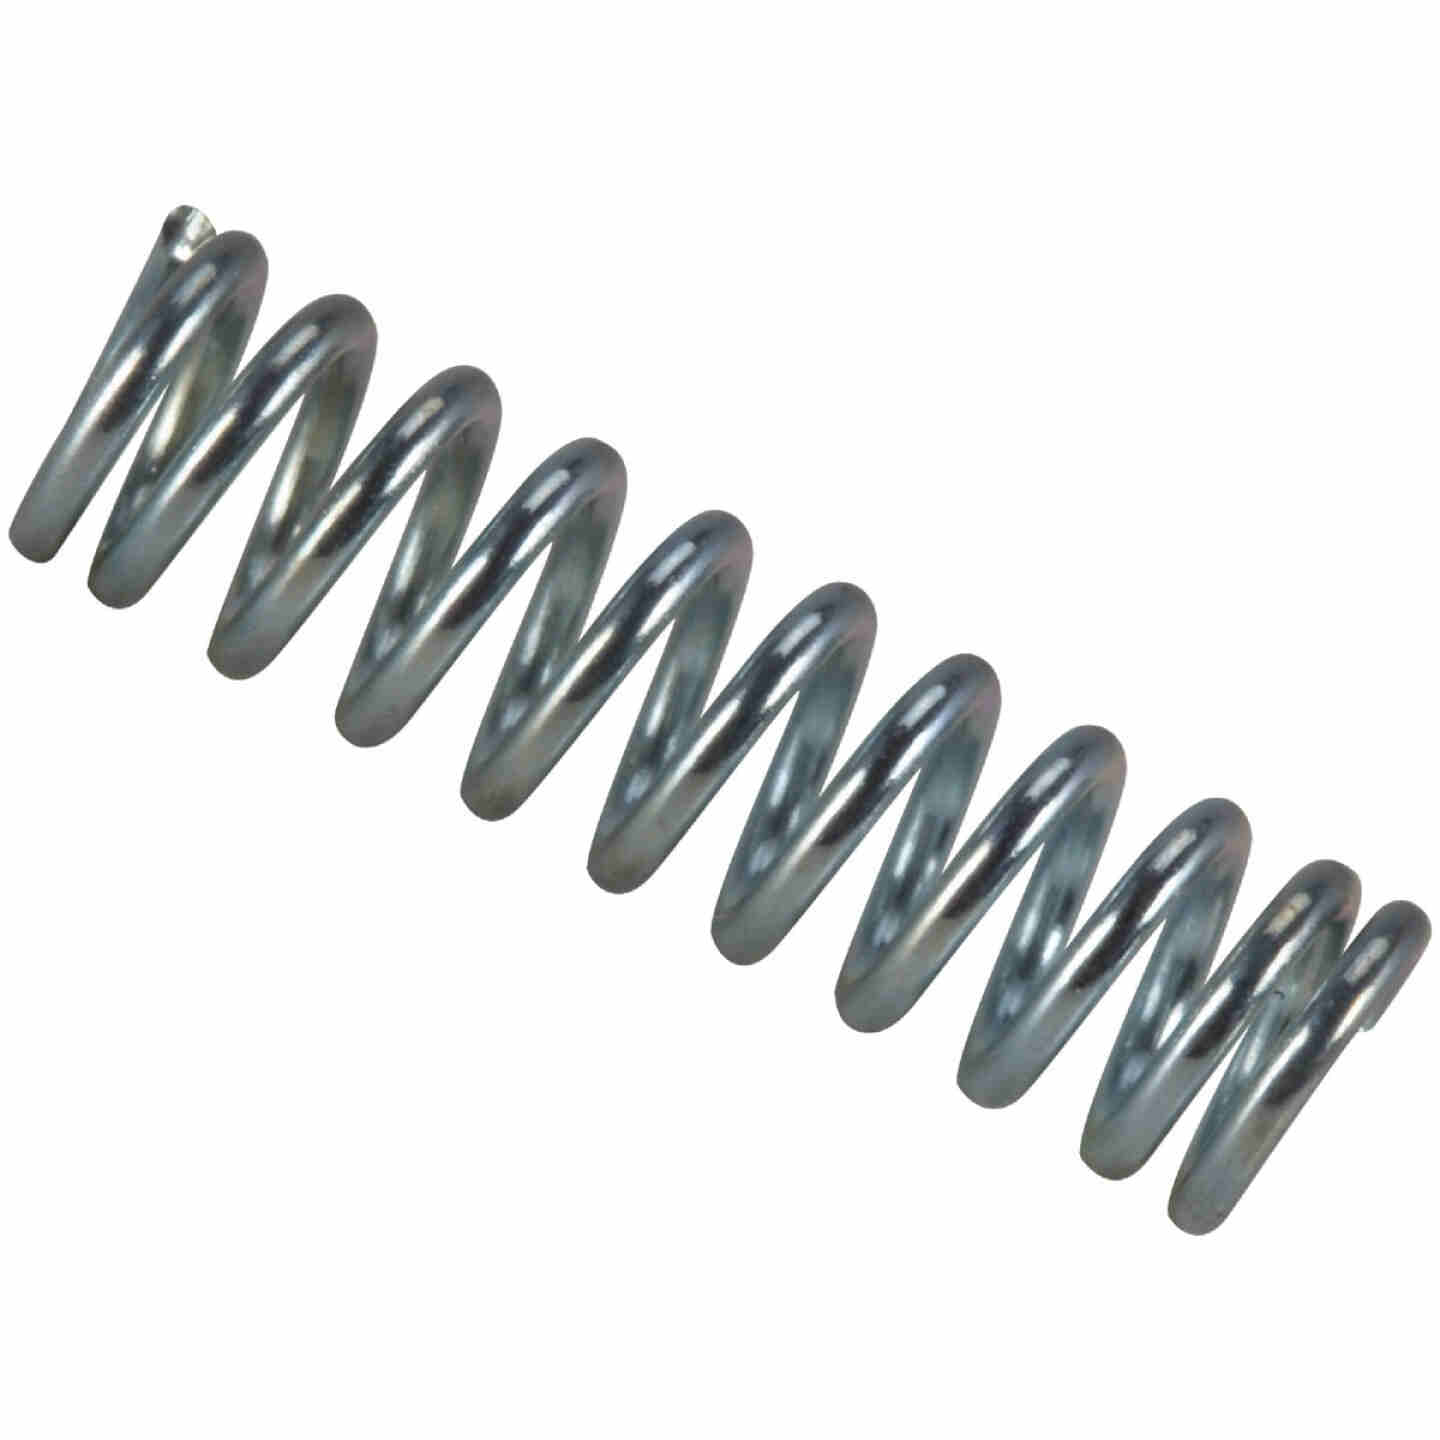 Century Spring 6 In. x 3/4 In. Compression Spring (2 Count) Image 1